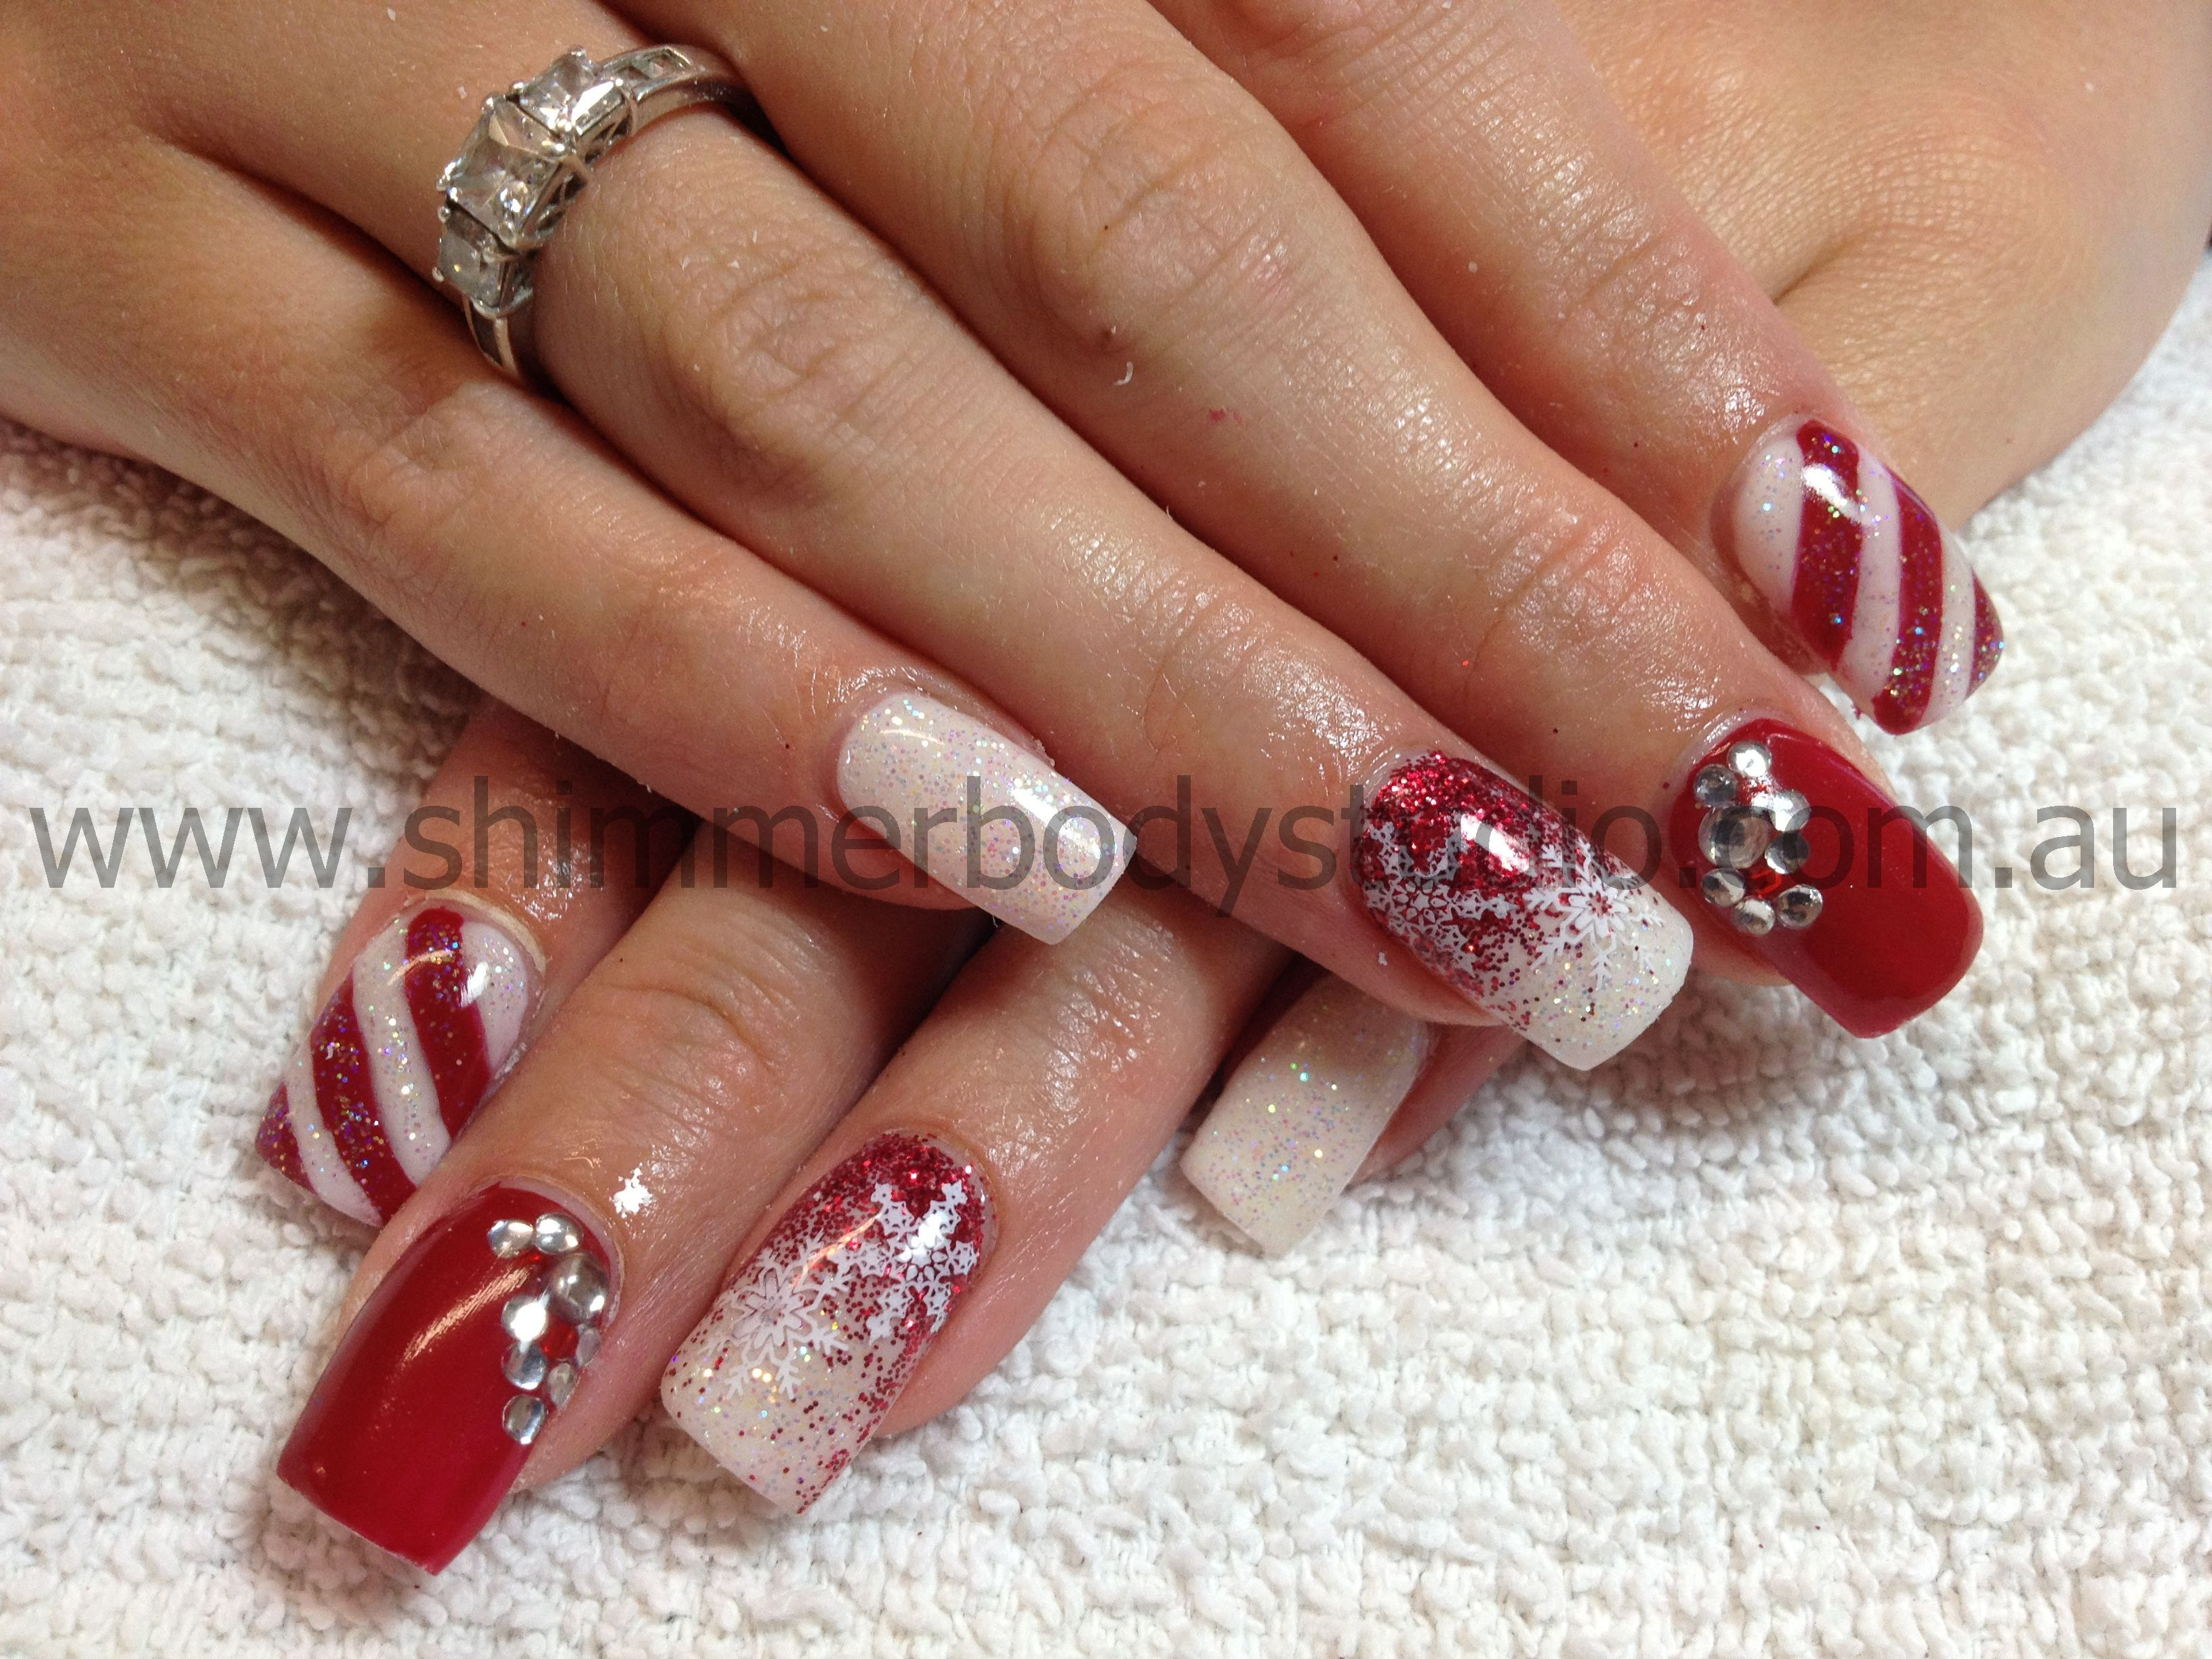 Gel nails, Christmas nails, red an white nails, glitter nails, crystals nail art by Shimmer Body Studio